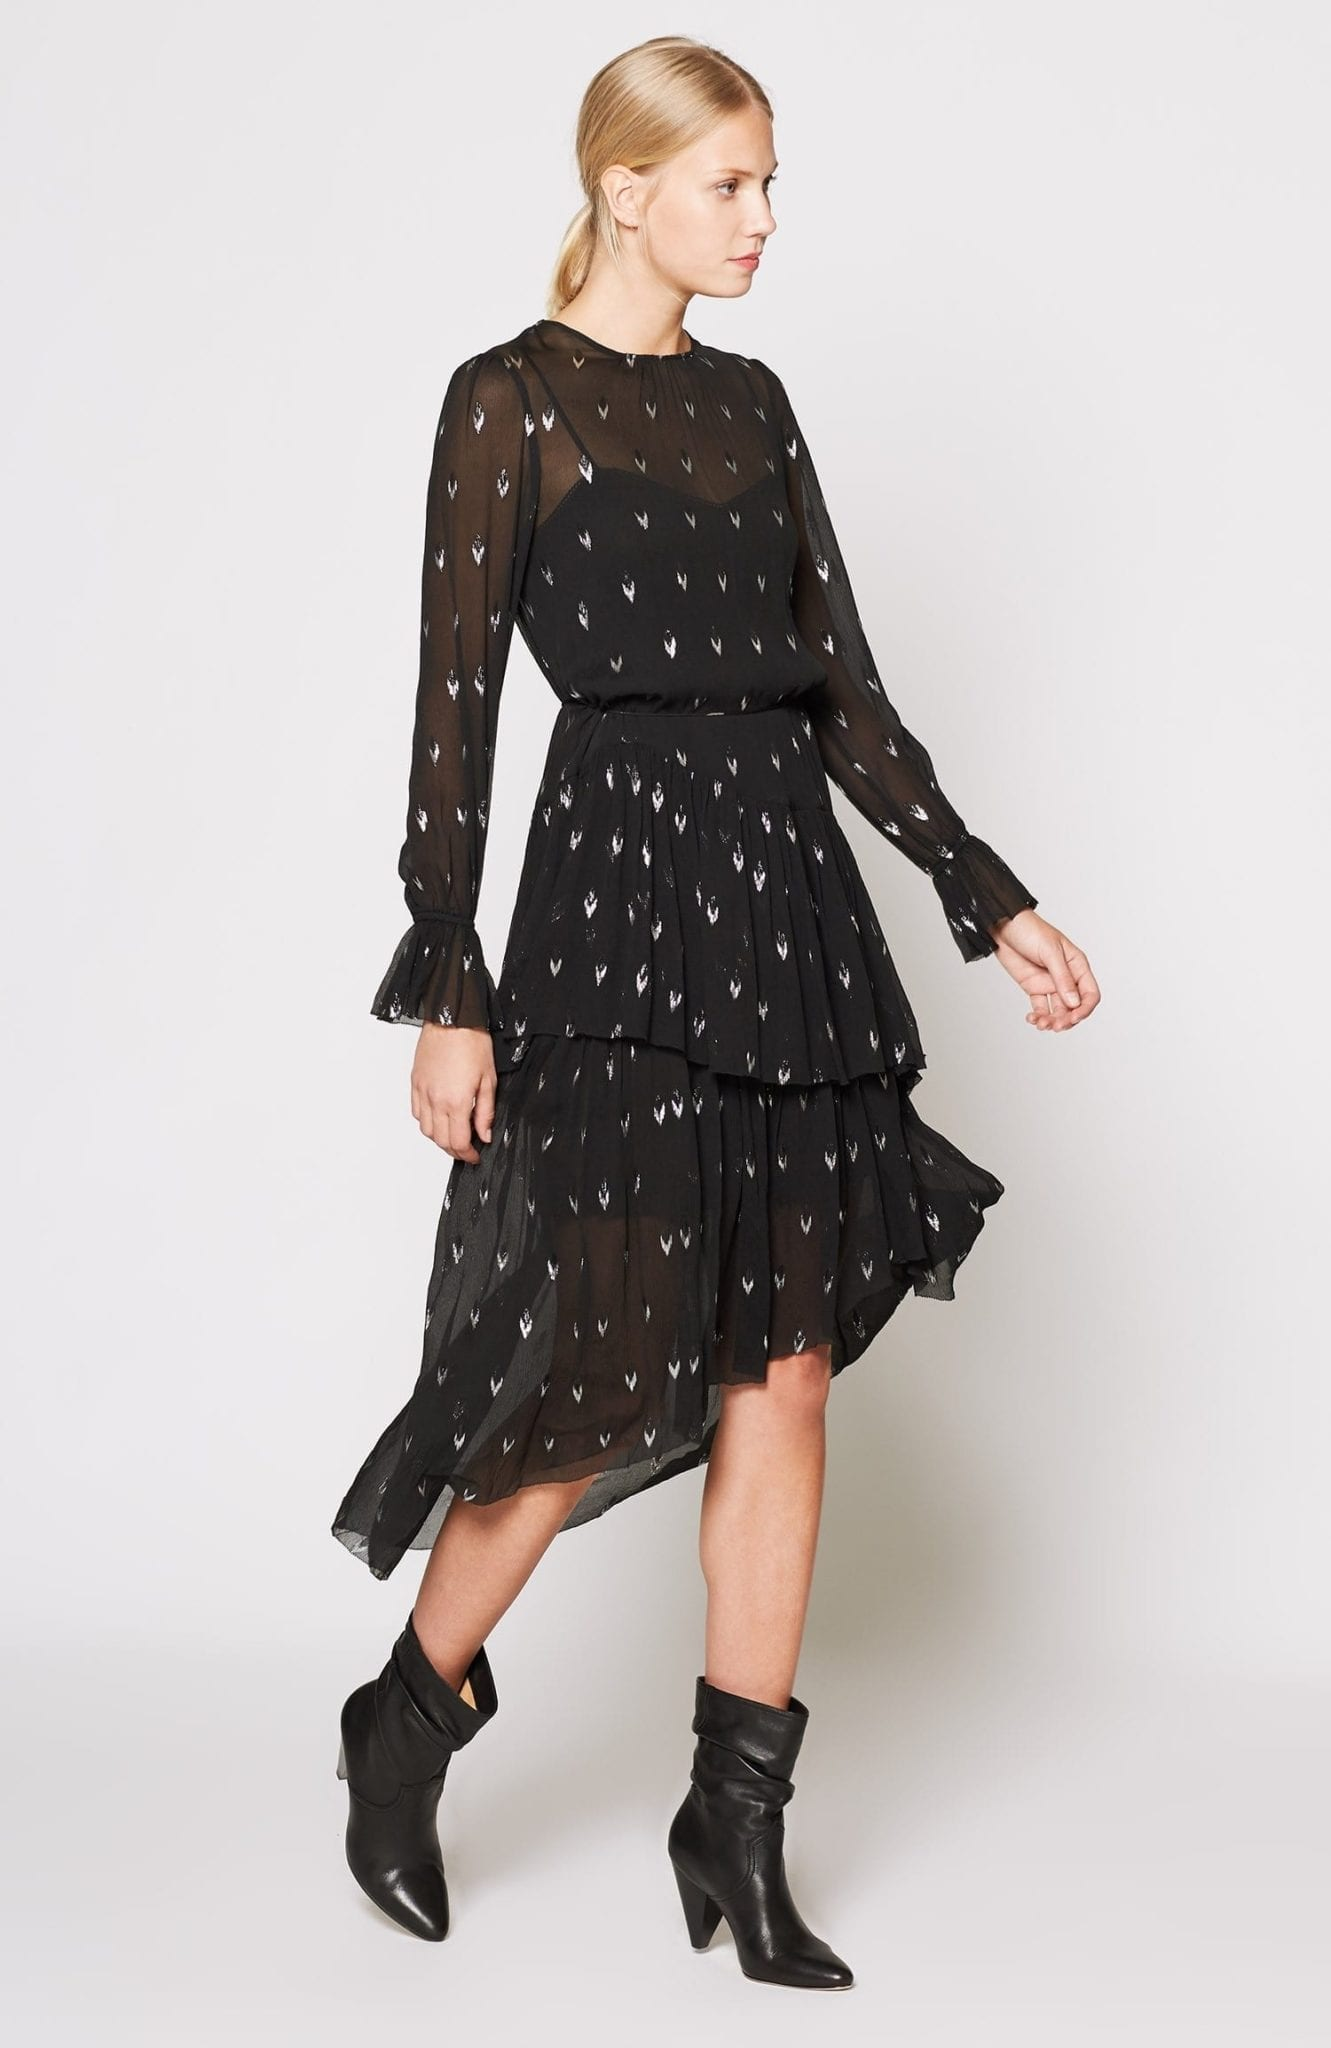 JOIE Maylene Silk Black Dress